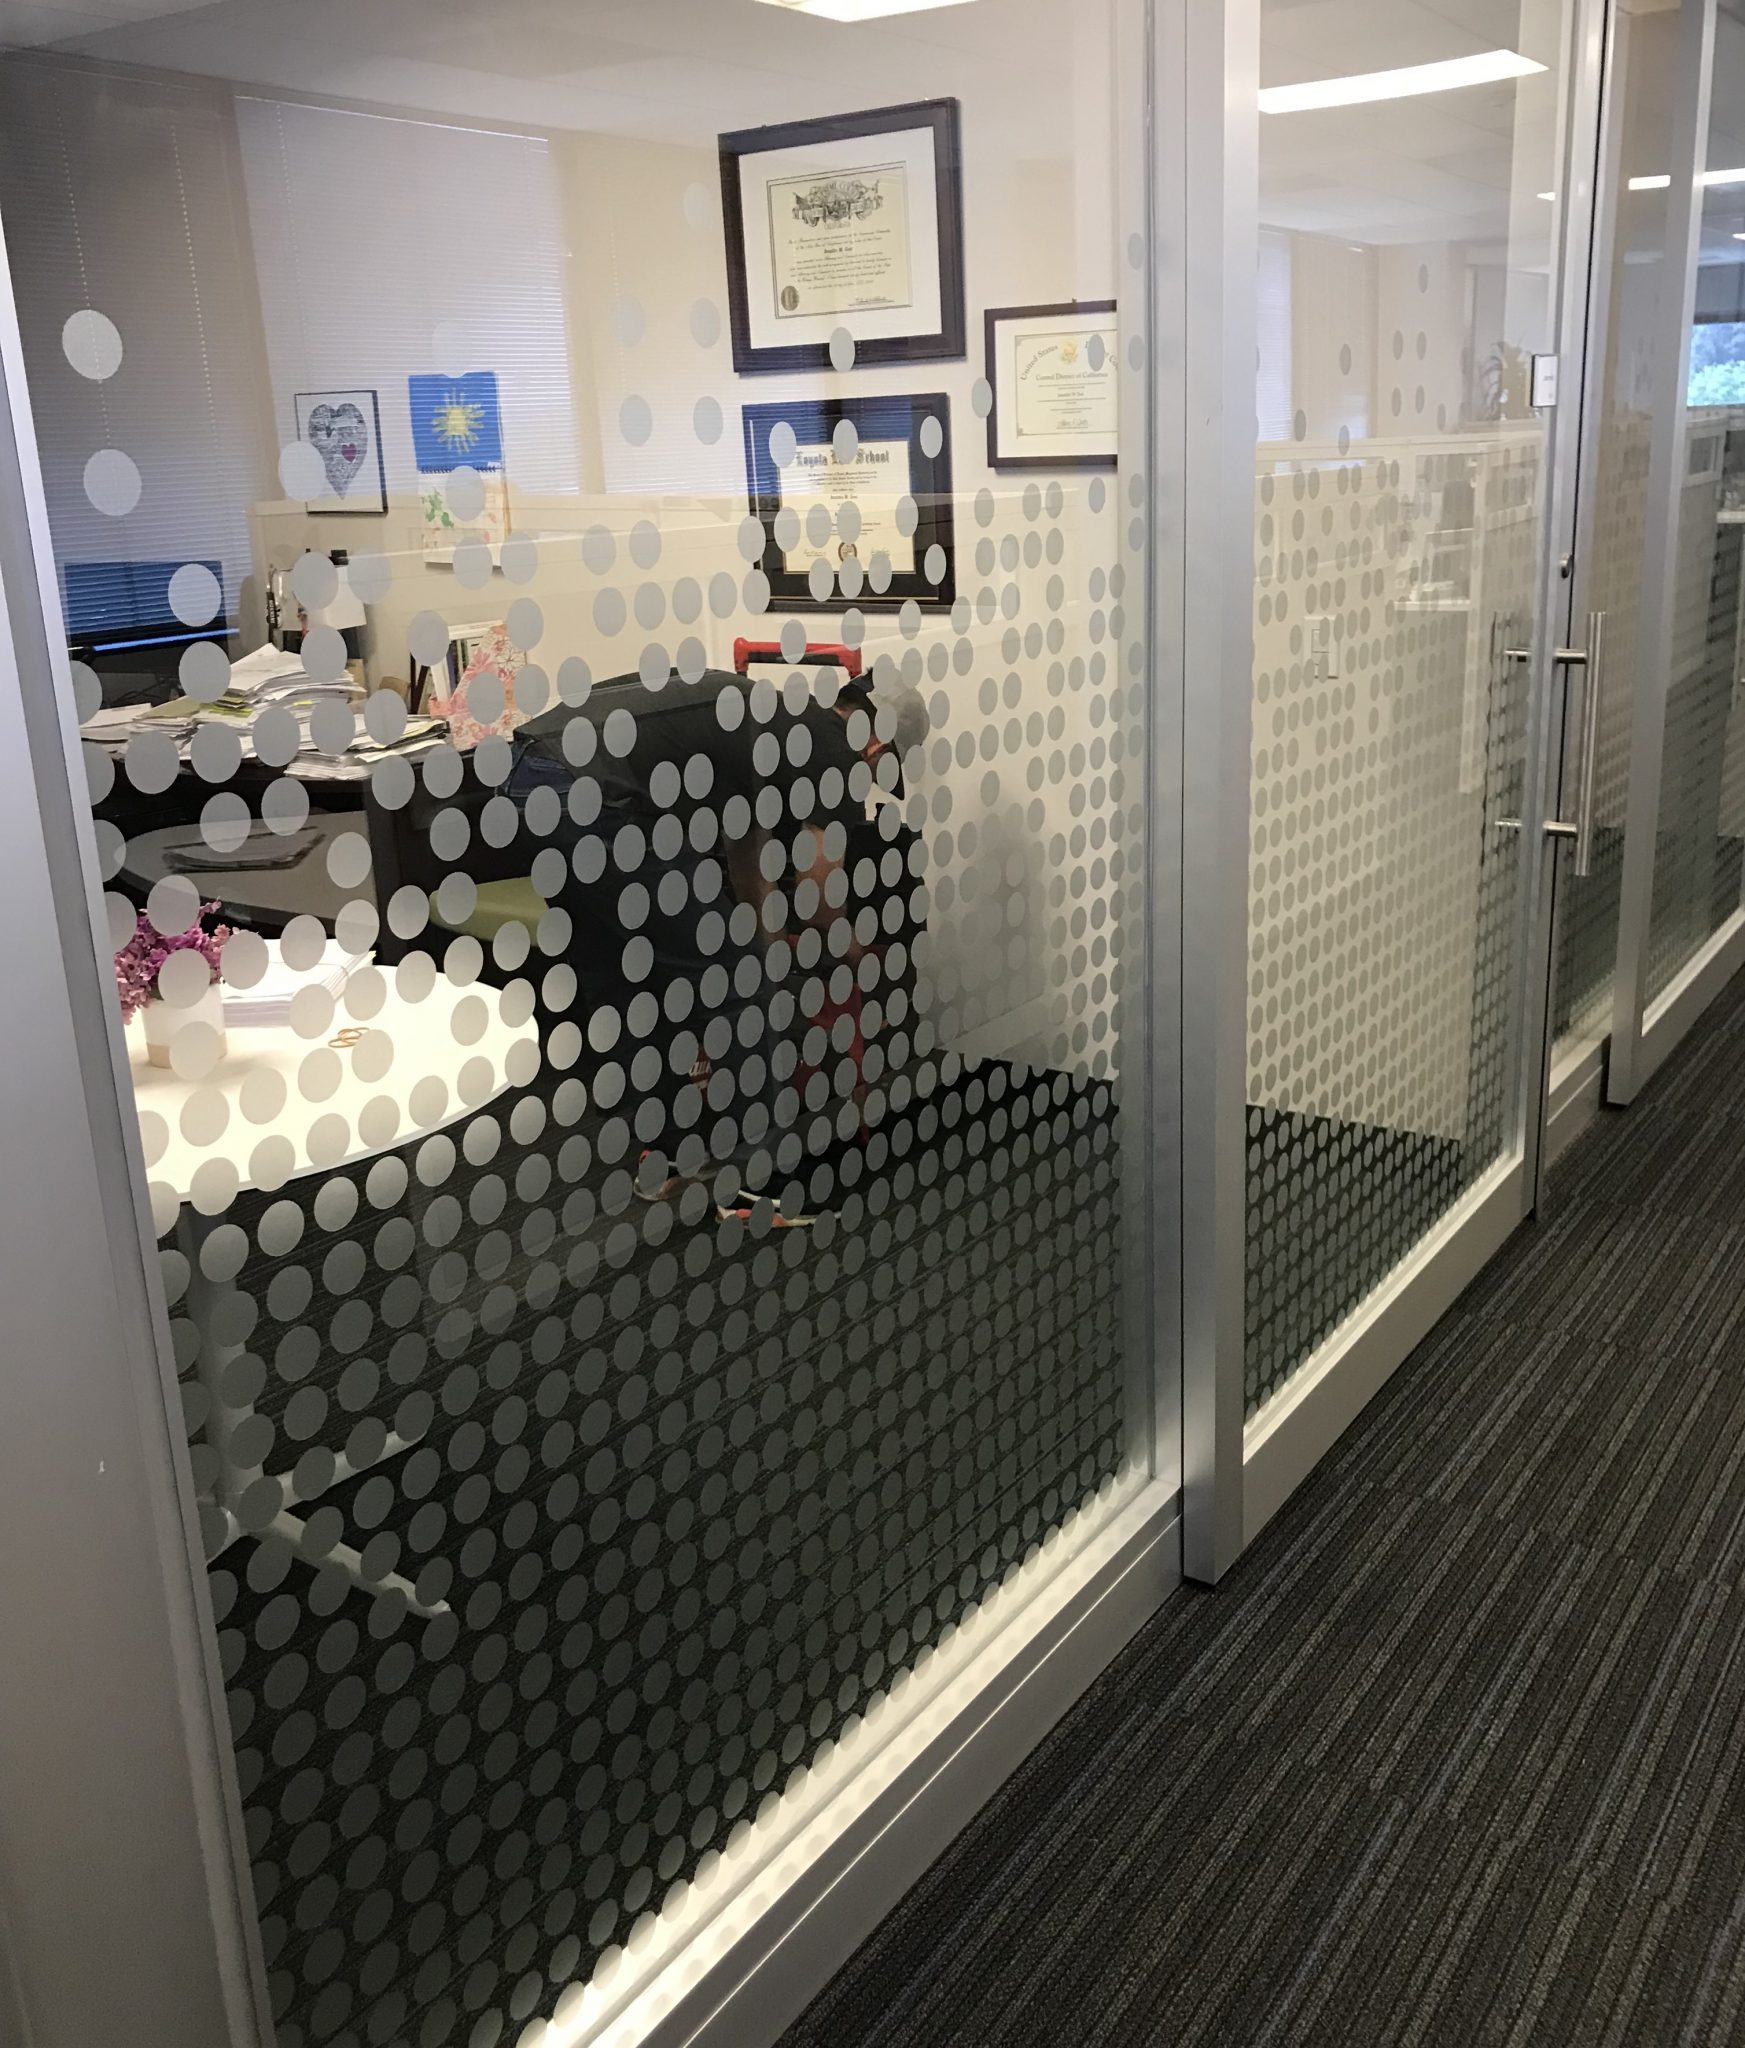 etched vinyl, etched glass vinyl, lobby signs, office signs, sign company, sign makers, sign industry, sign installation, interior signs